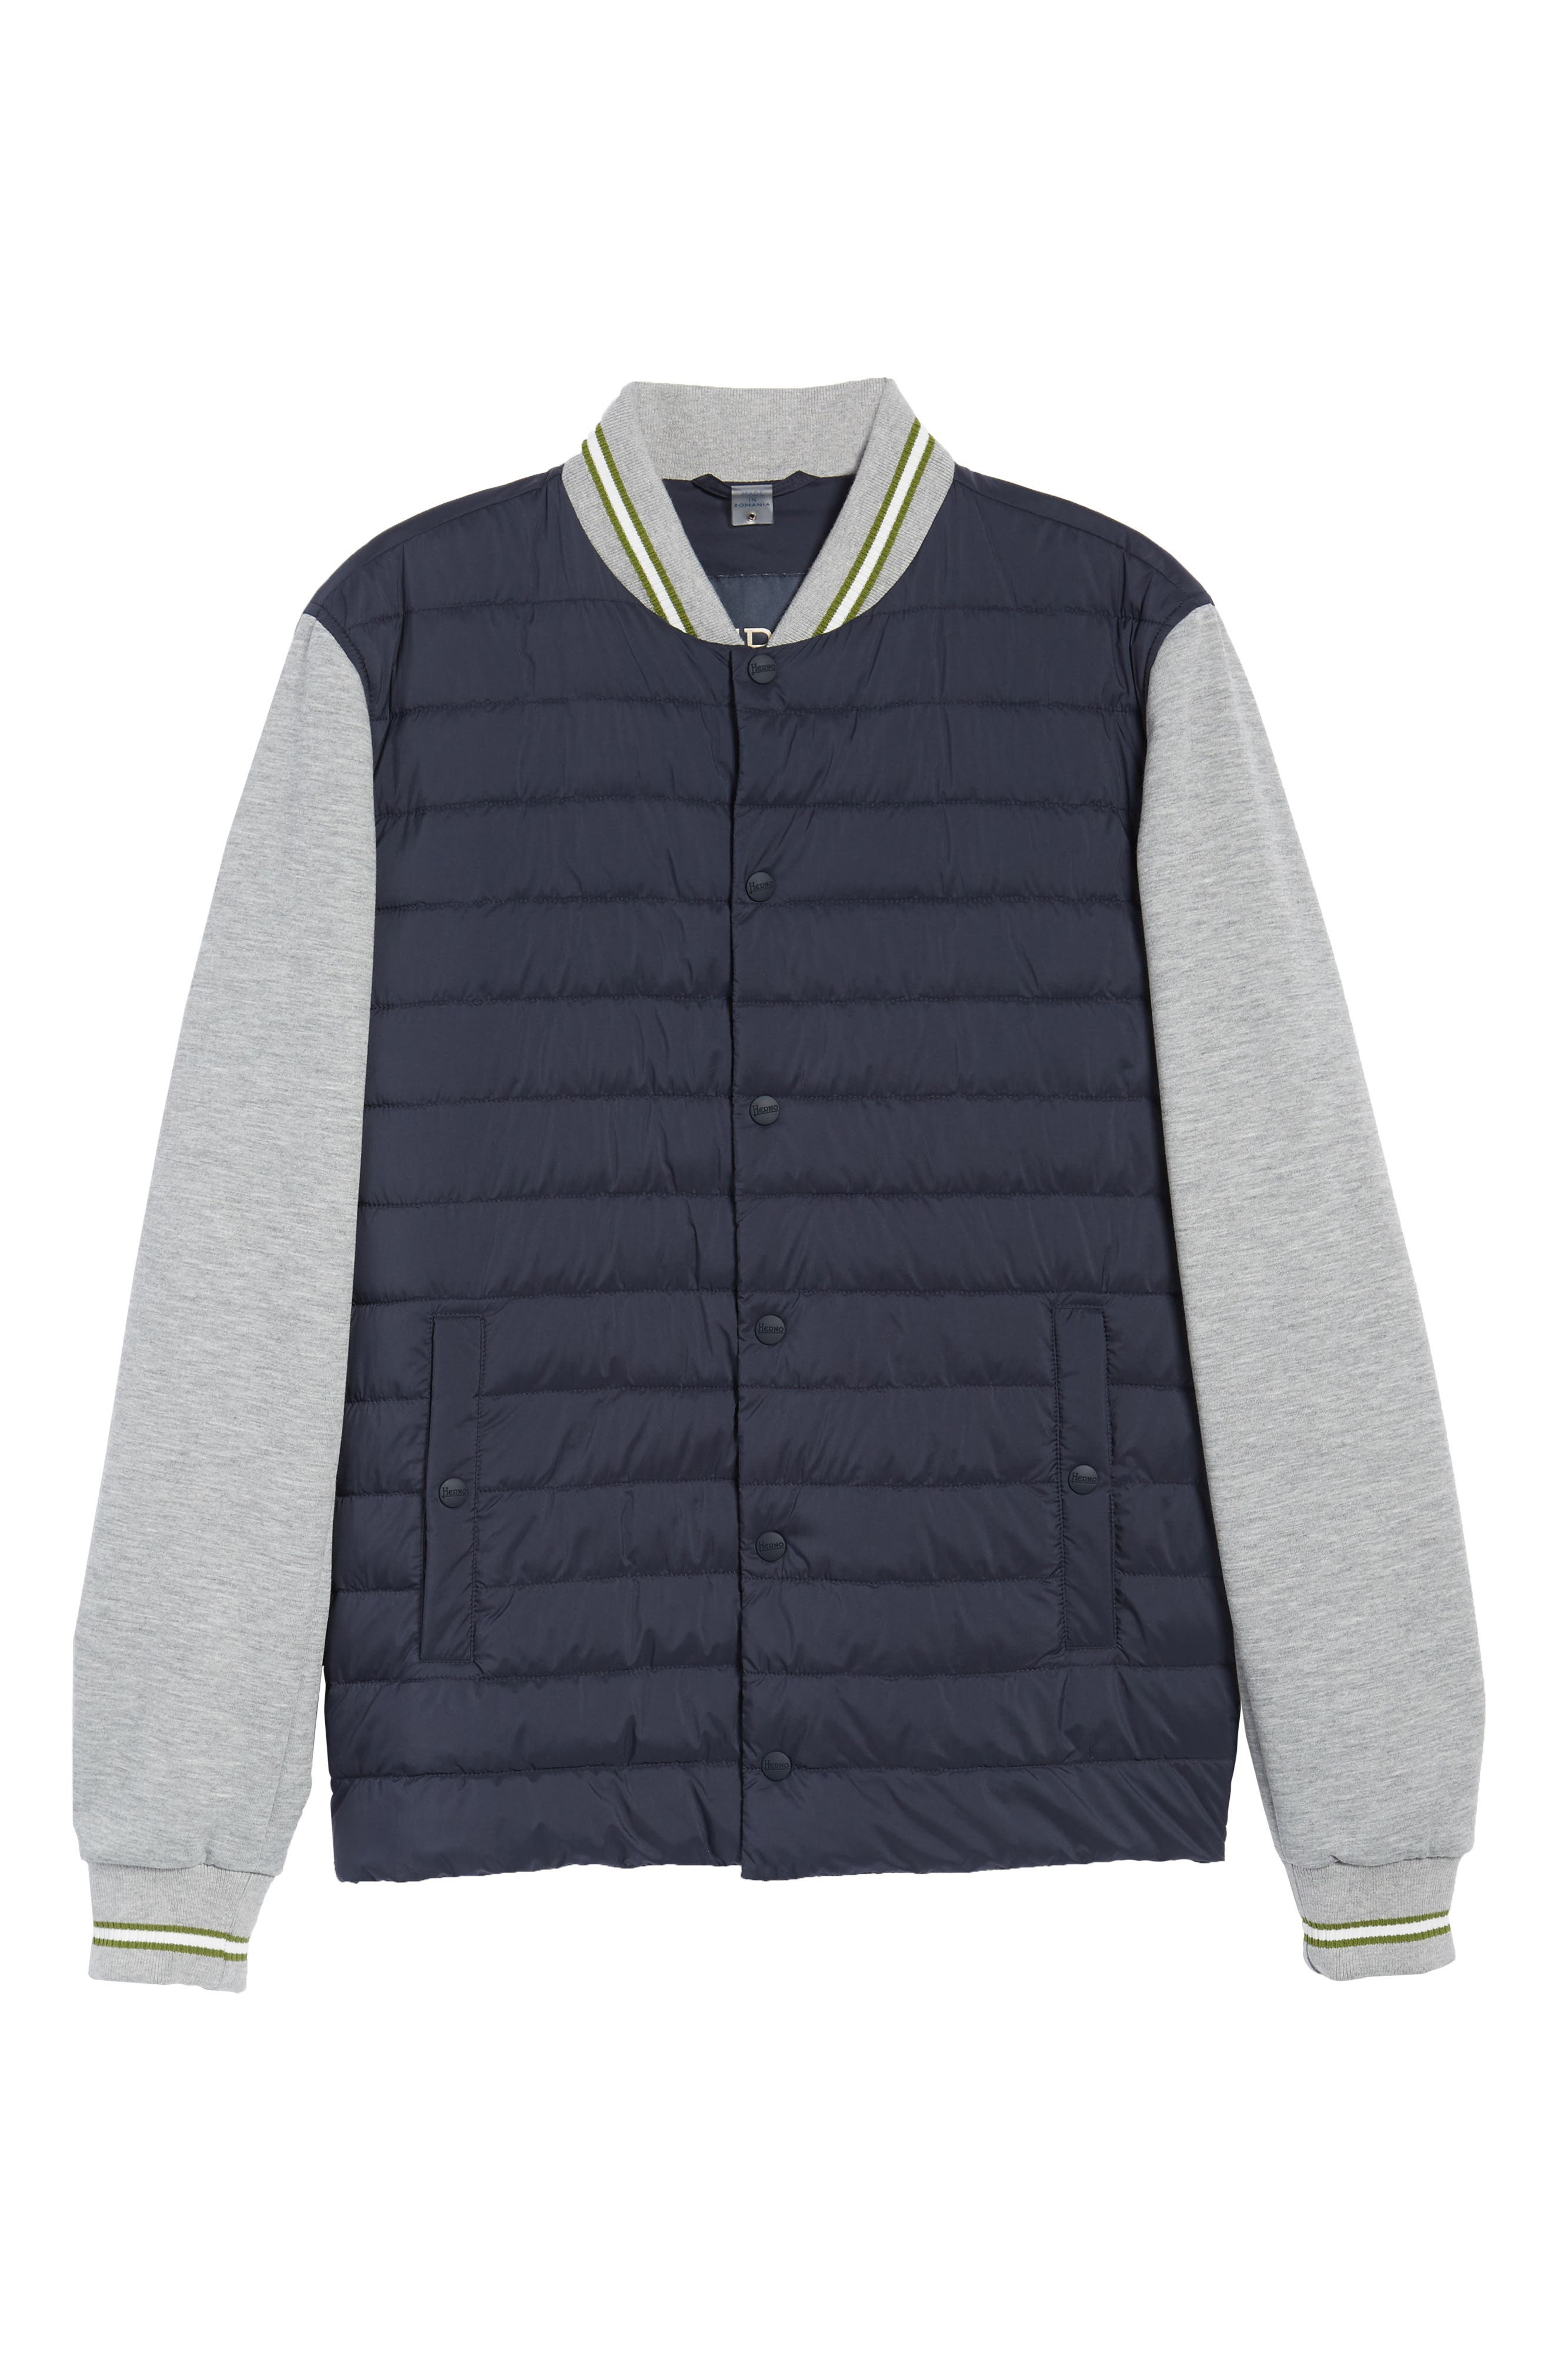 Quilted Baseball Jacket,                             Alternate thumbnail 6, color,                             Navy